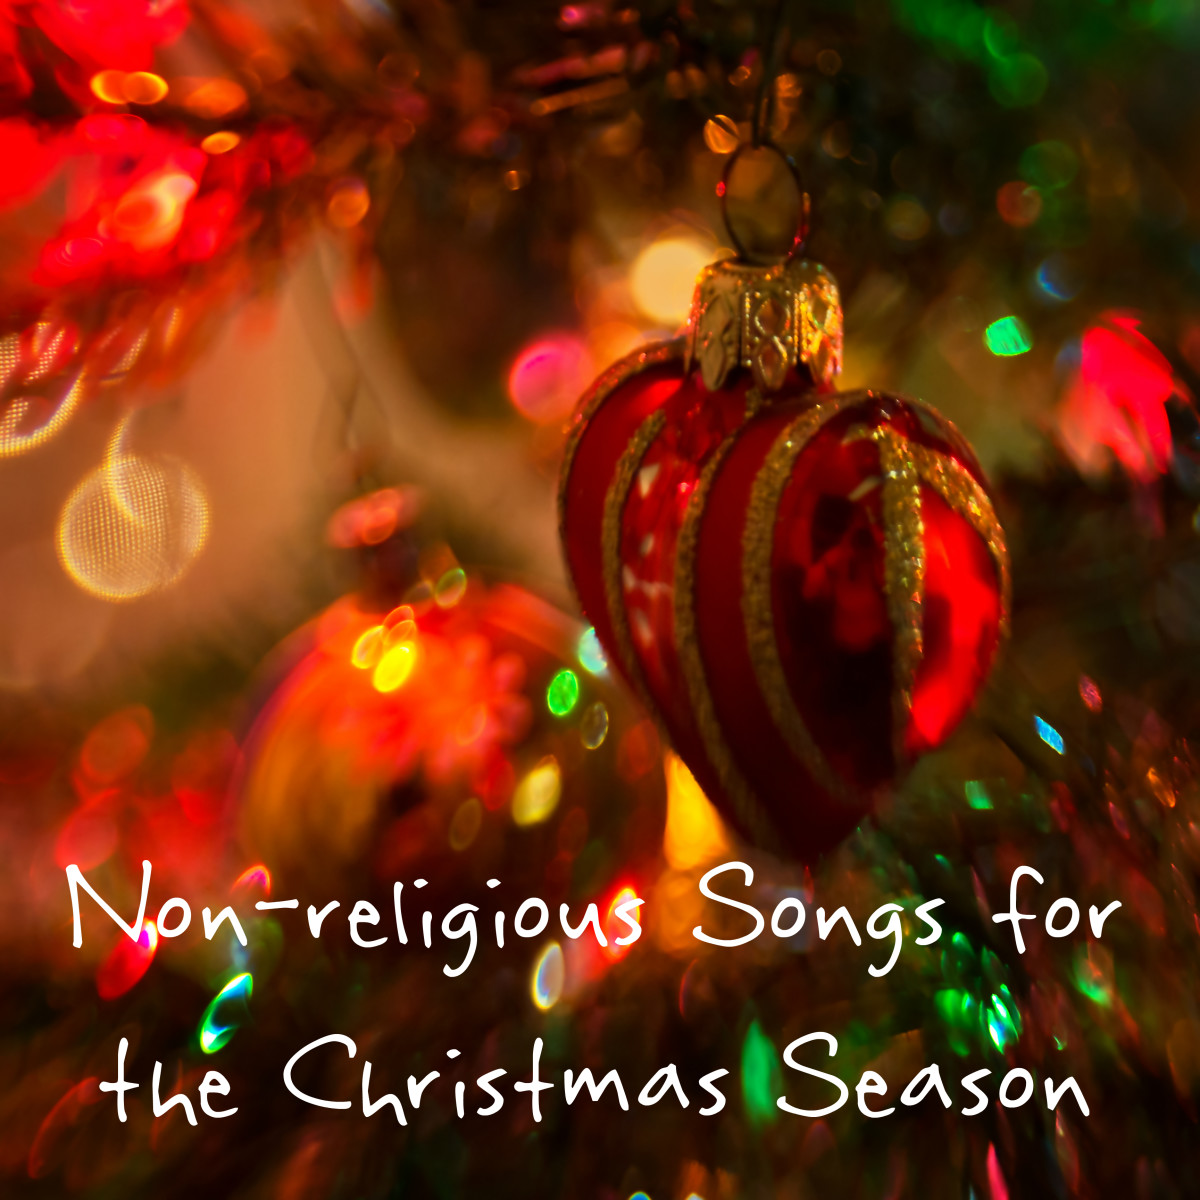 111 Non-Religious Christmas Songs for Your Holiday Playlist